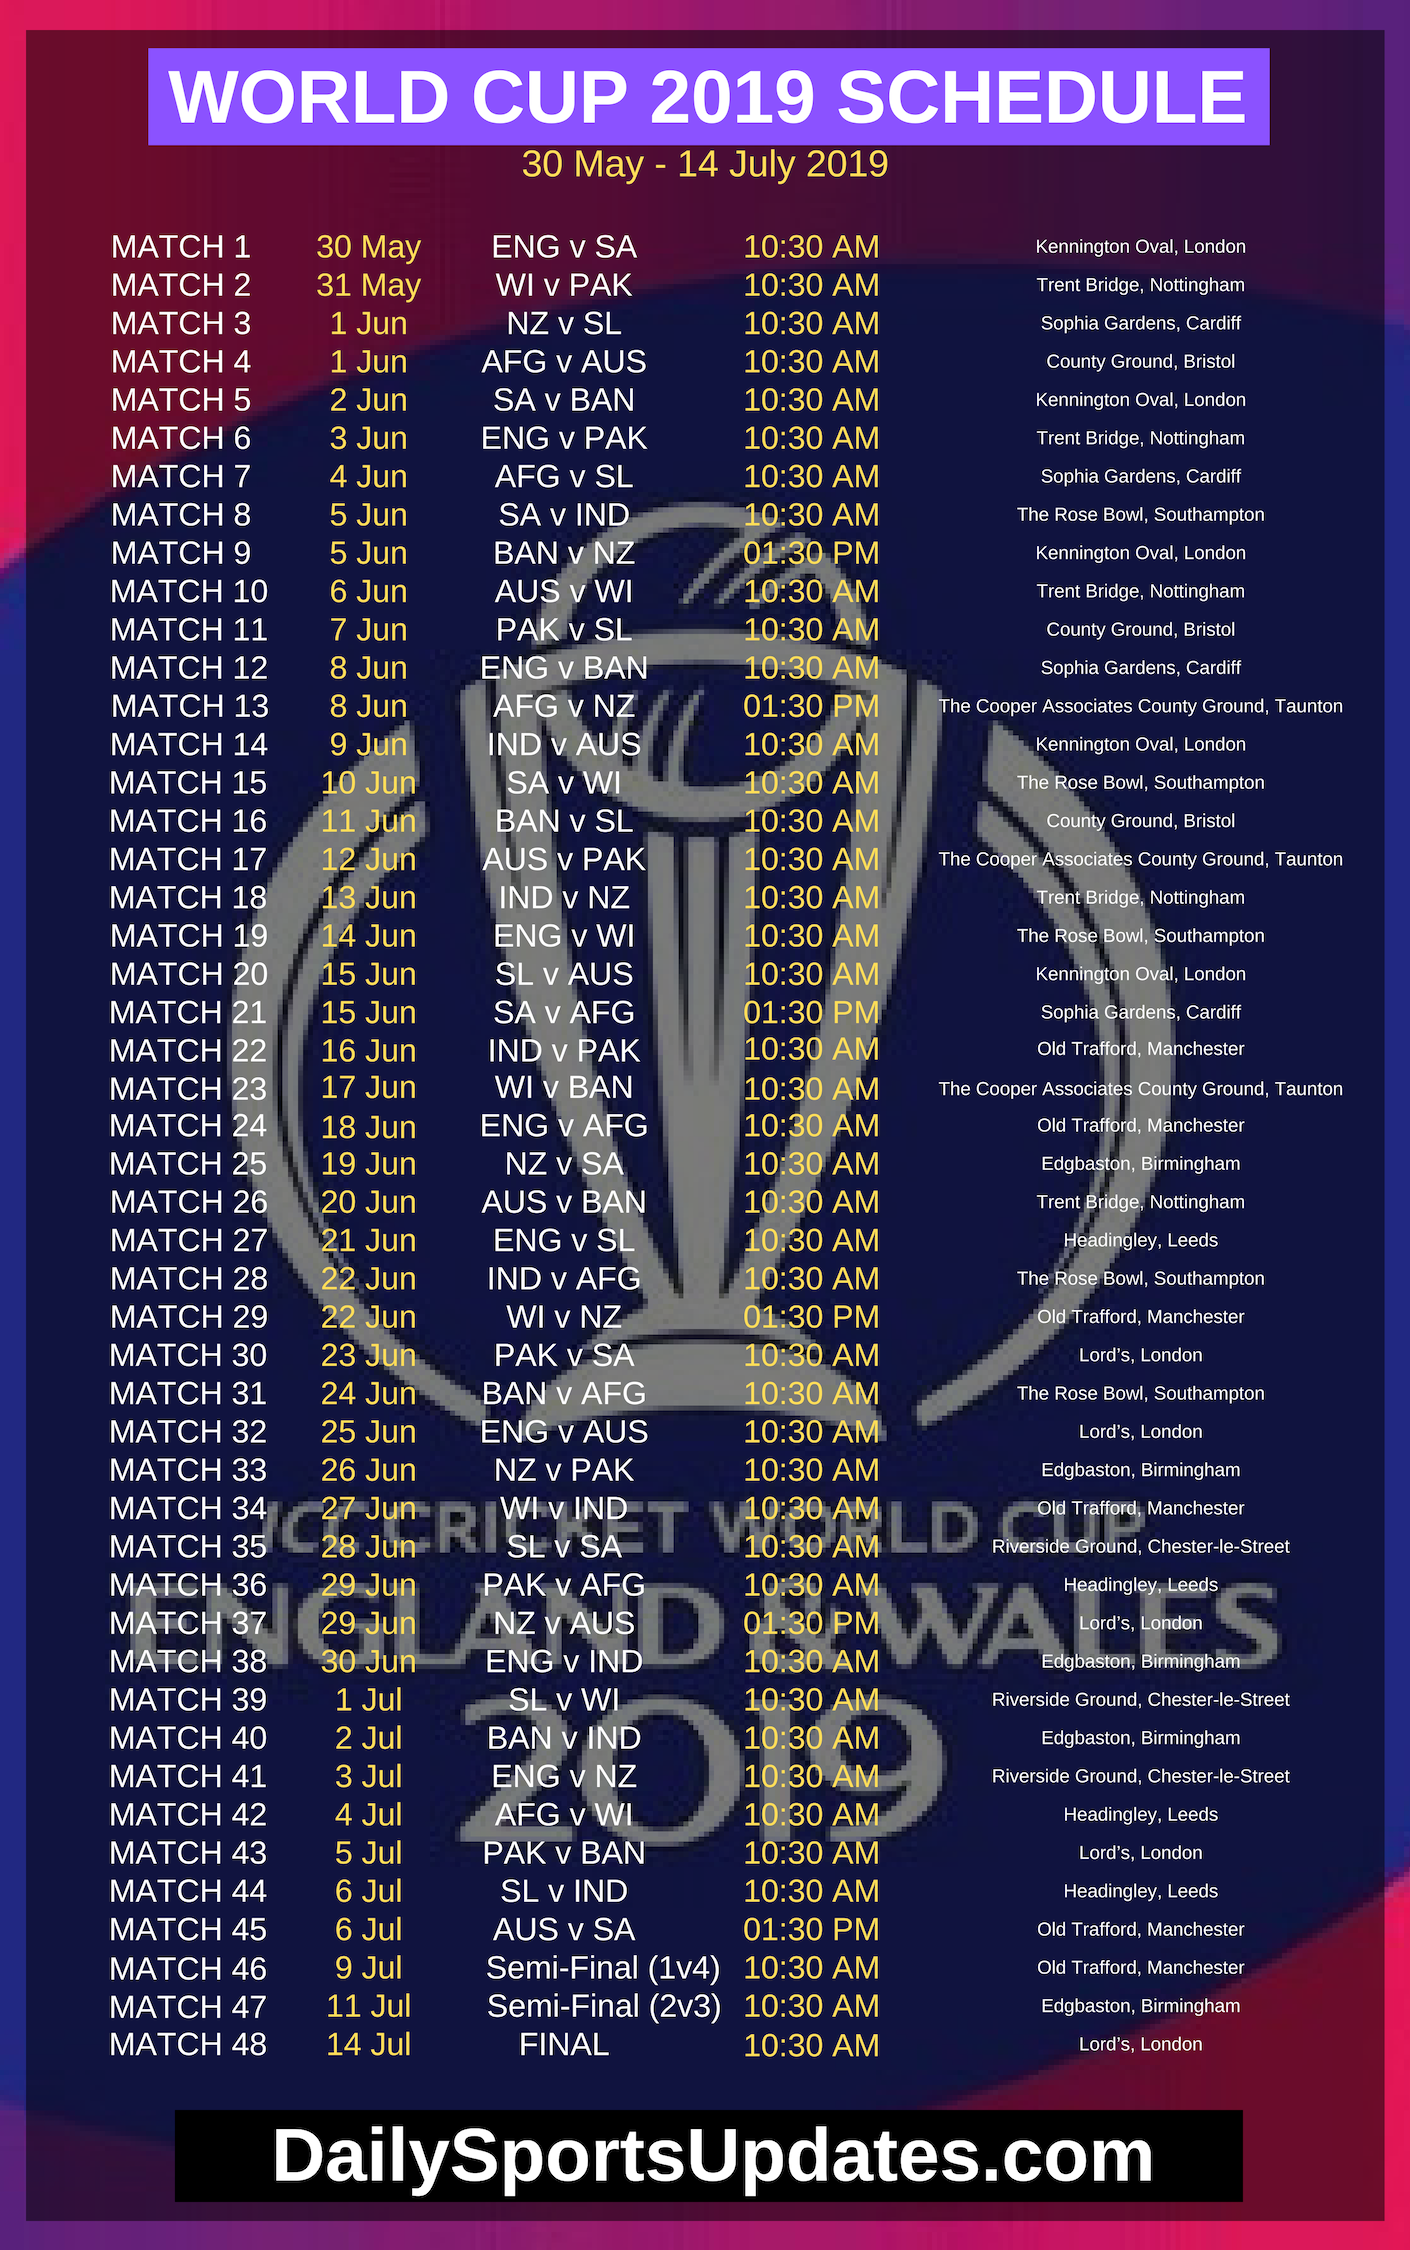 ICC Cricket World Cup 2019 Complete Schedule